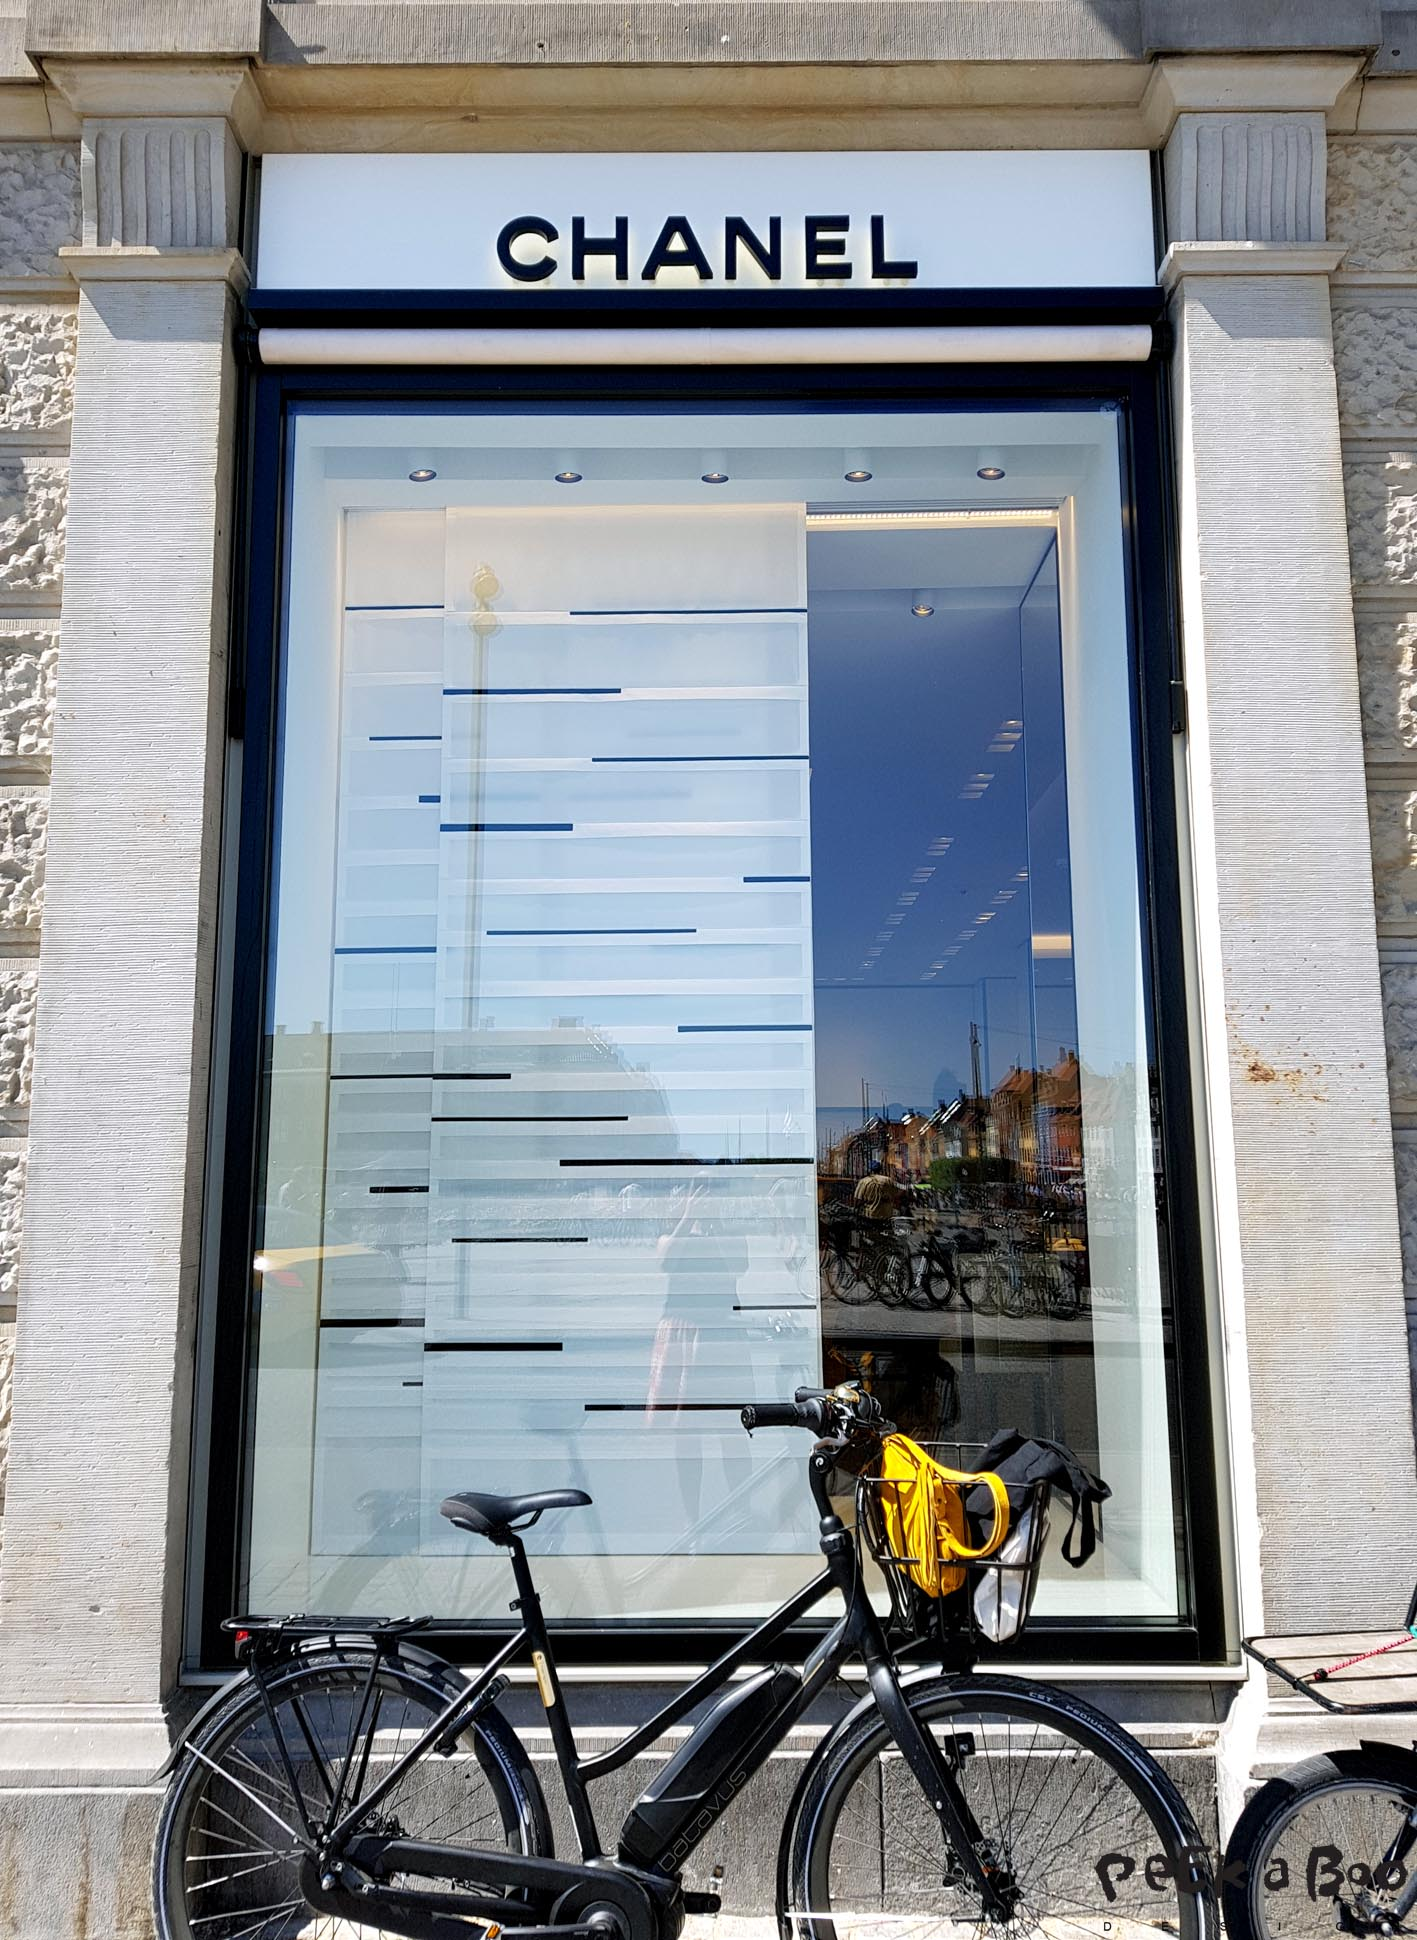 In the perfect company. Batavus Harlem in front of the Chanel shop....in Copenhagen.